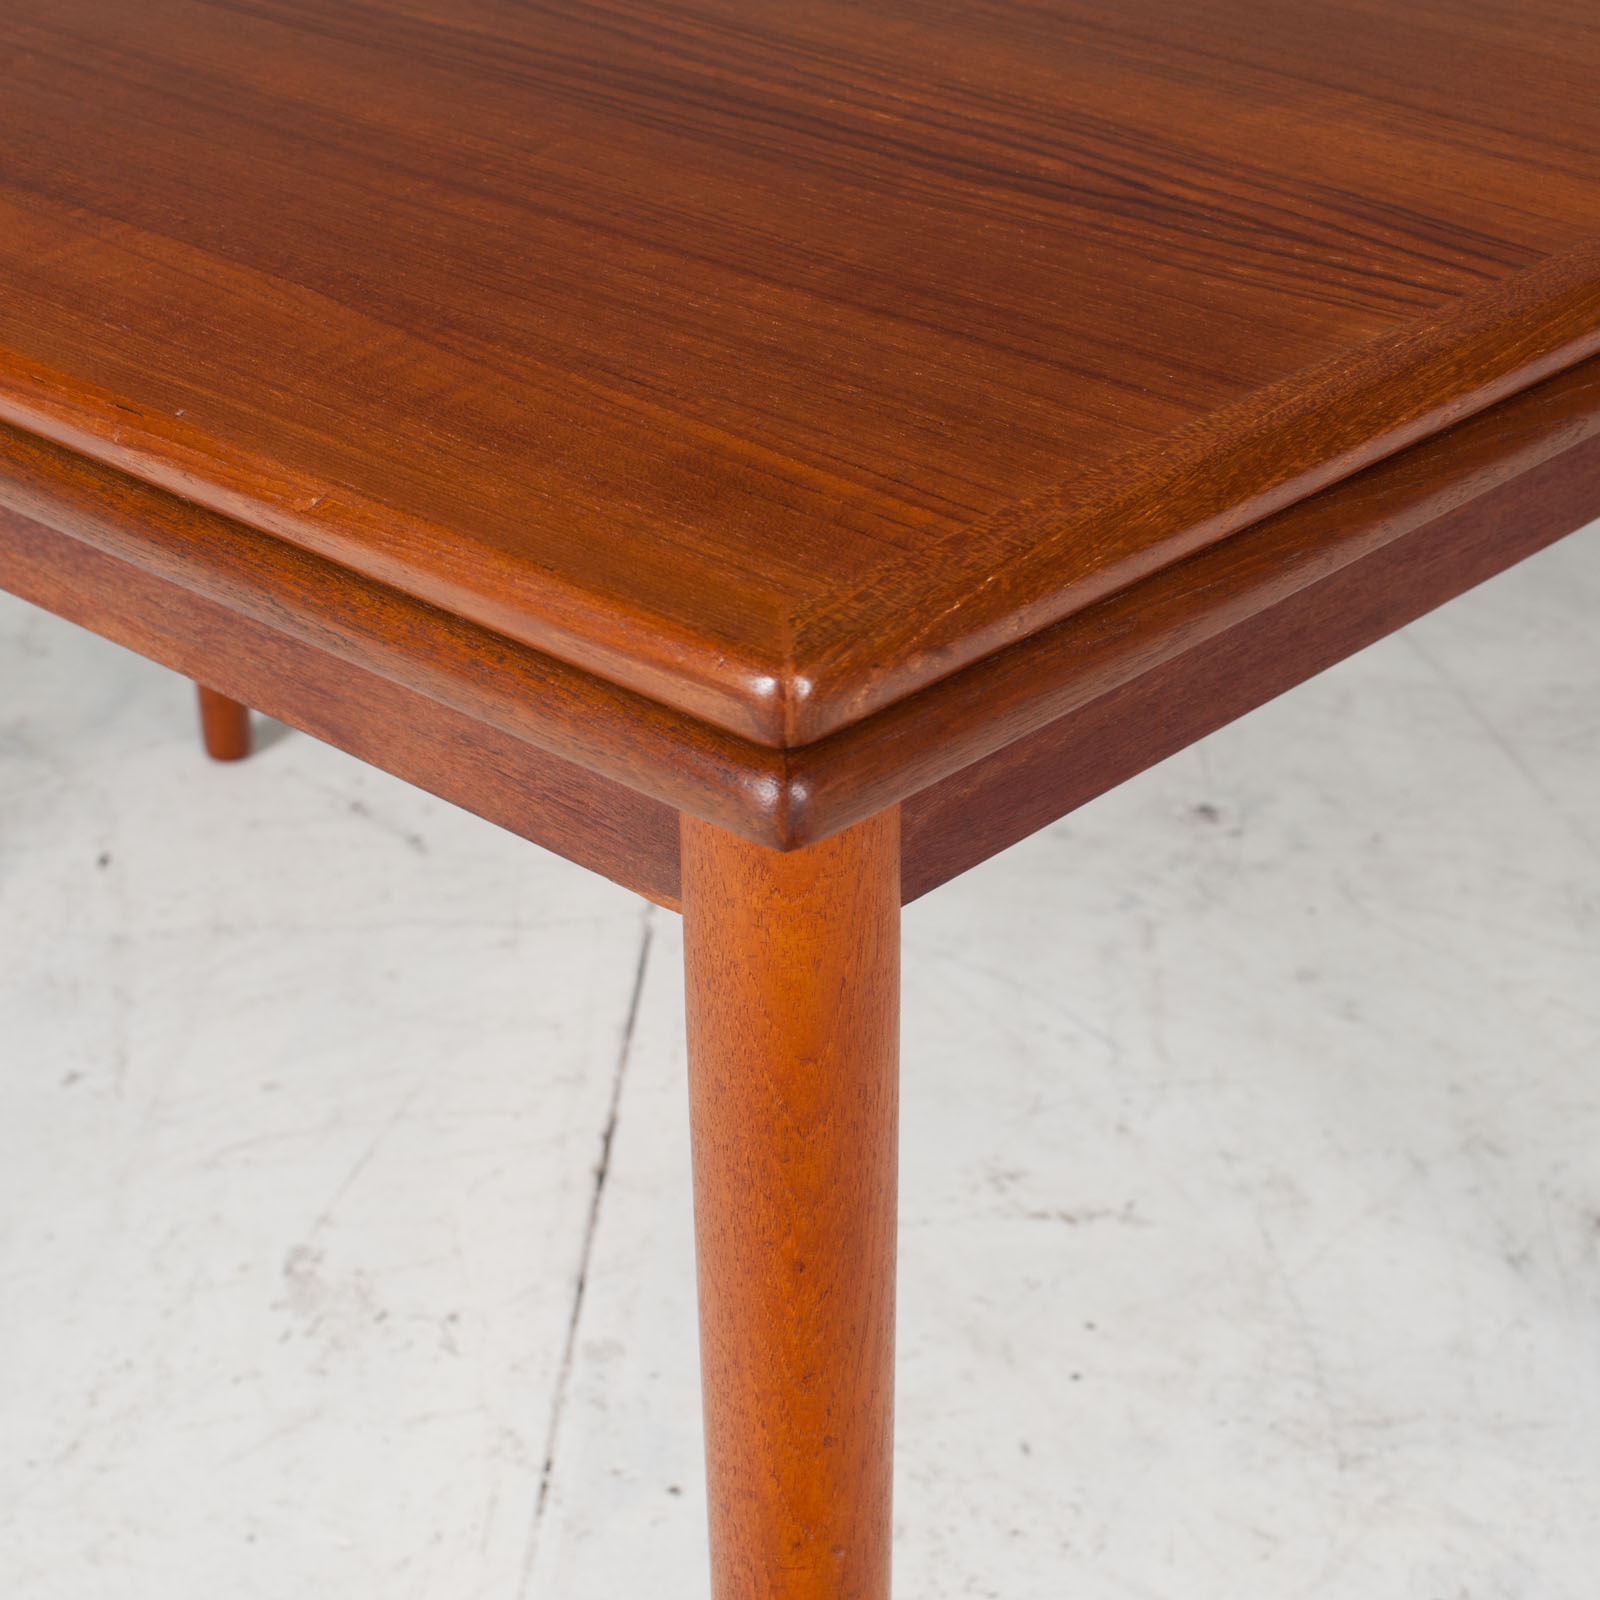 Rectangular Dining Table In Teak With Concealed Extentions 1960s Denmark7